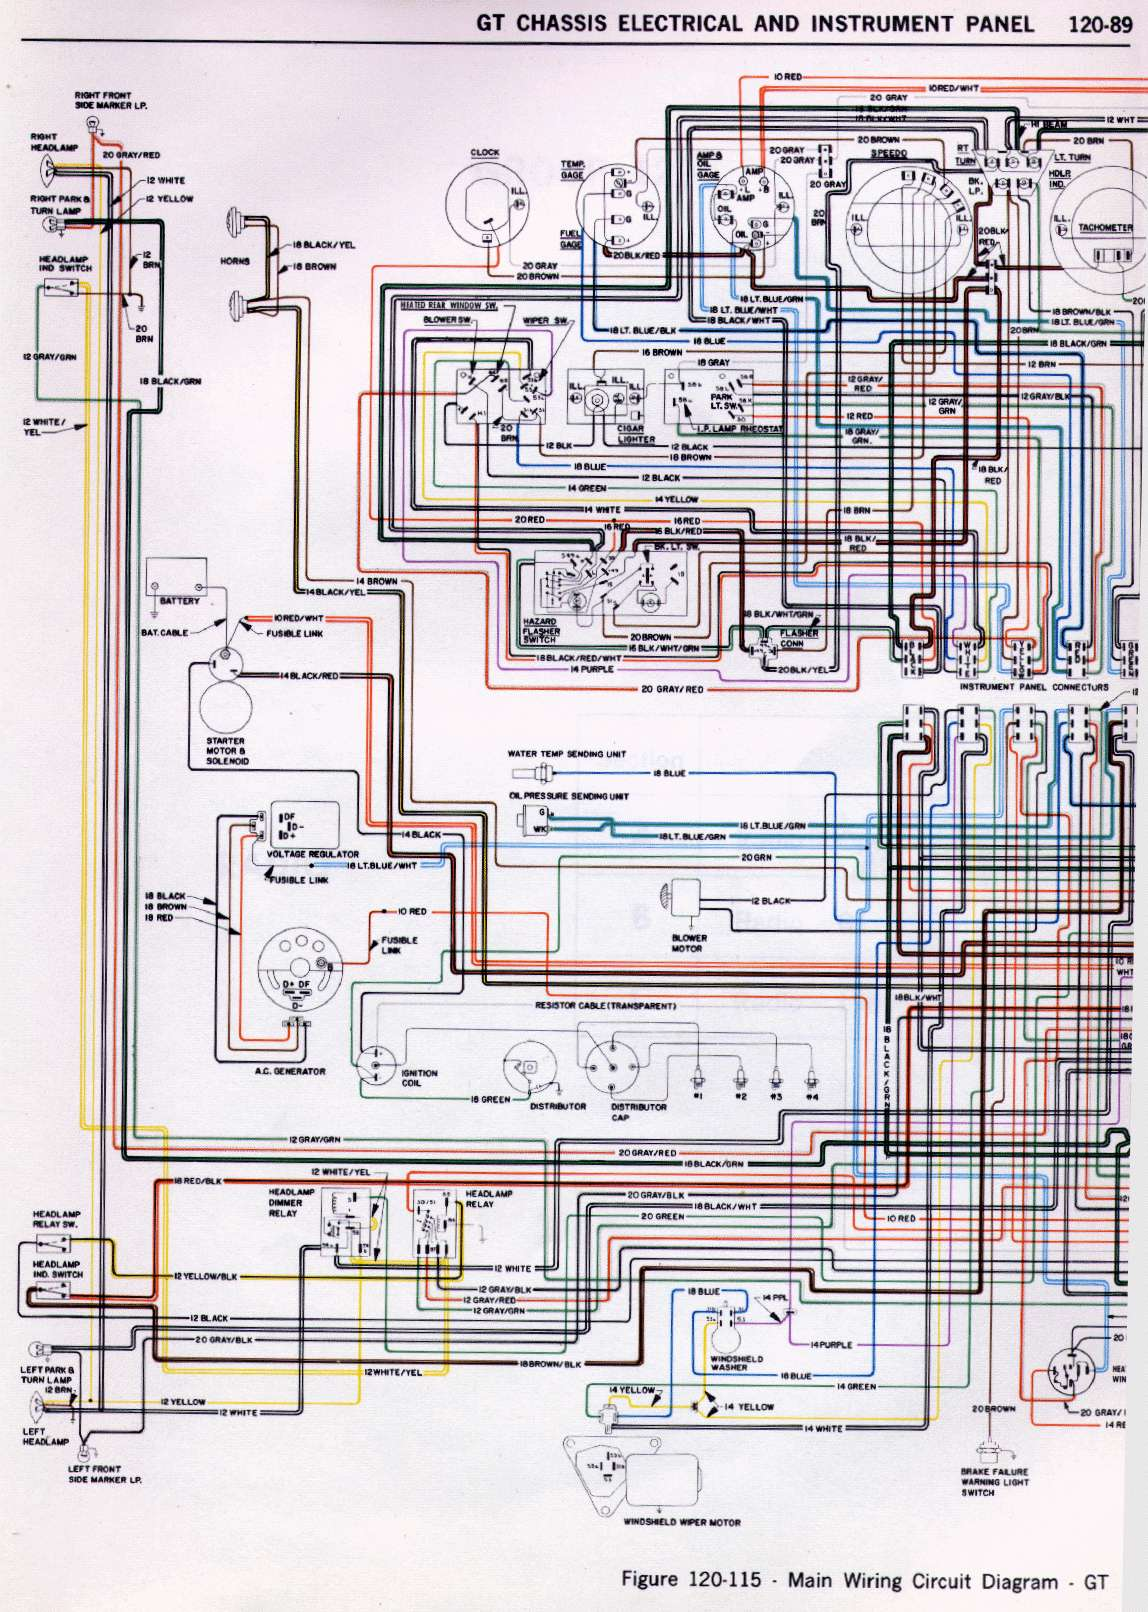 Mci Bus Wiring Diagram 1997 - Wiring Diagram Overview wires-week - wires -week.aigaravenna.itaigaravenna.it